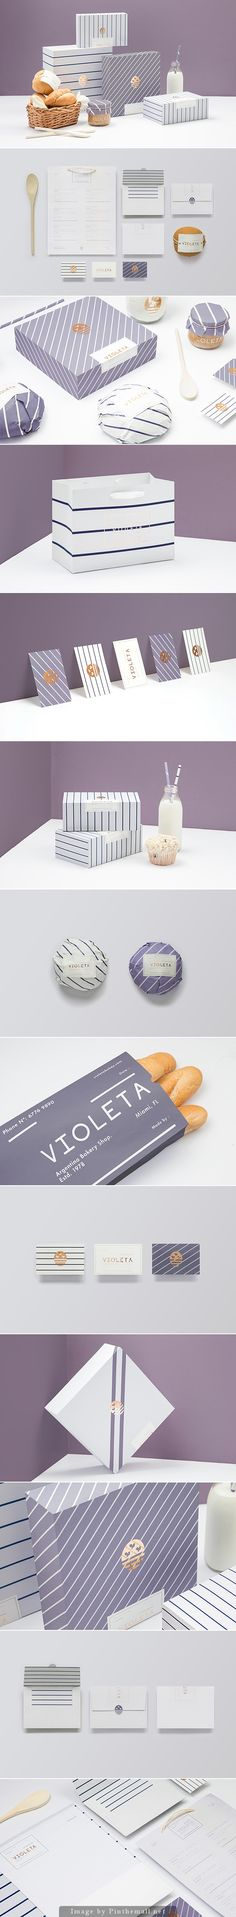 Here's all the gorgeous VIOLETA #packaging and #branding by Anagrama all on one pin and a #2014 top pin too PD